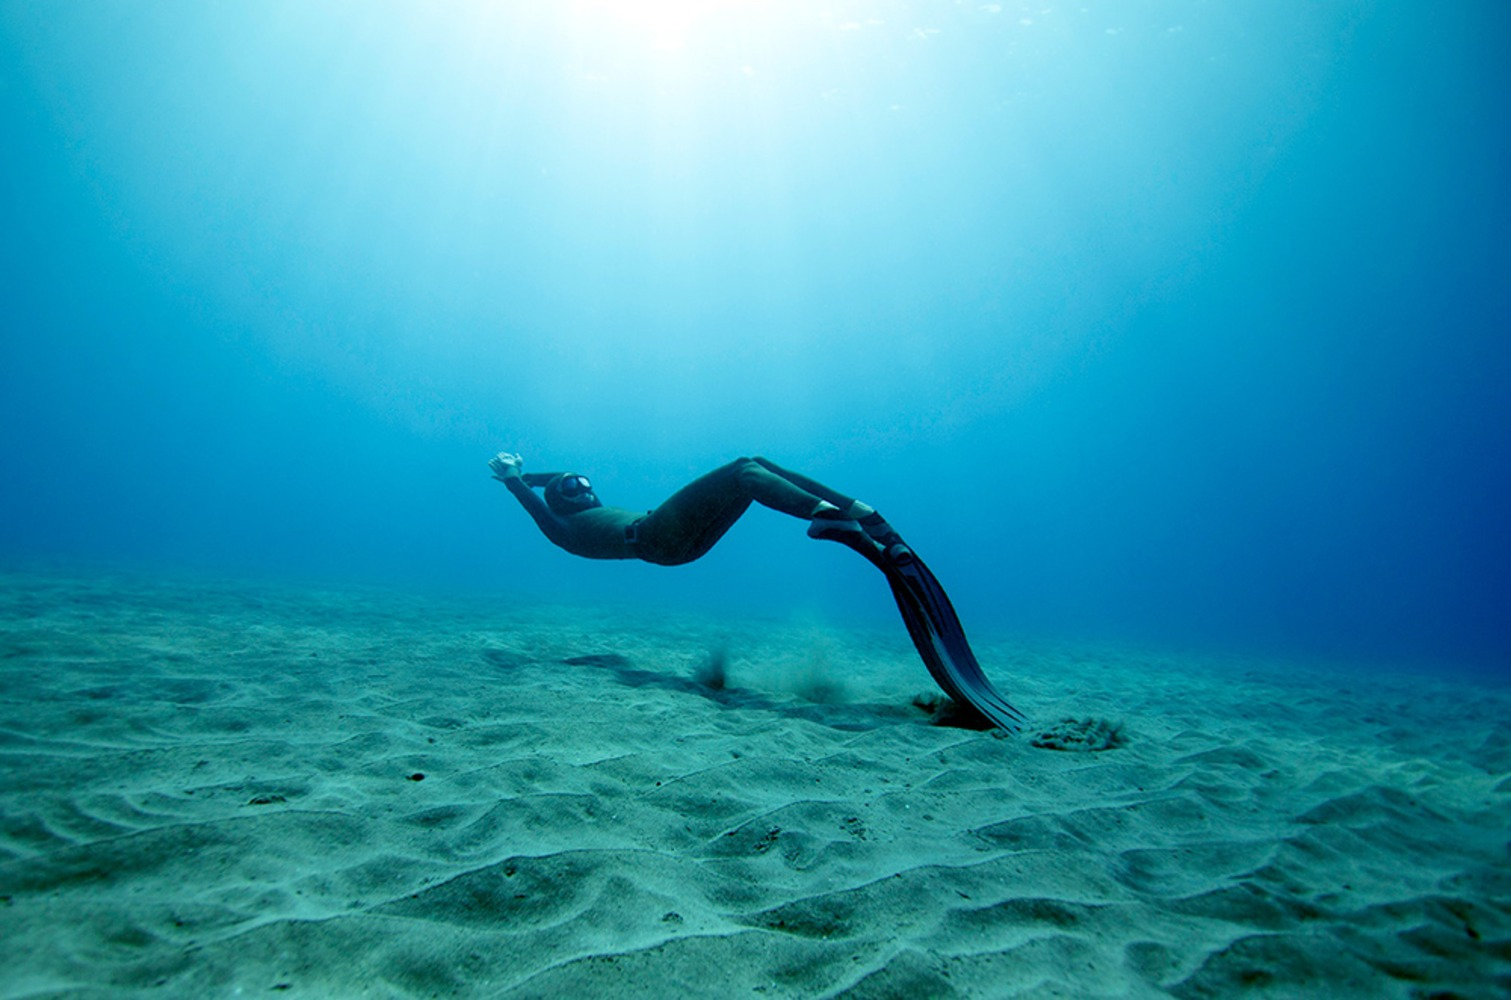 On One Deep Breath Divers Capture Beauty Of Ocean's Depths